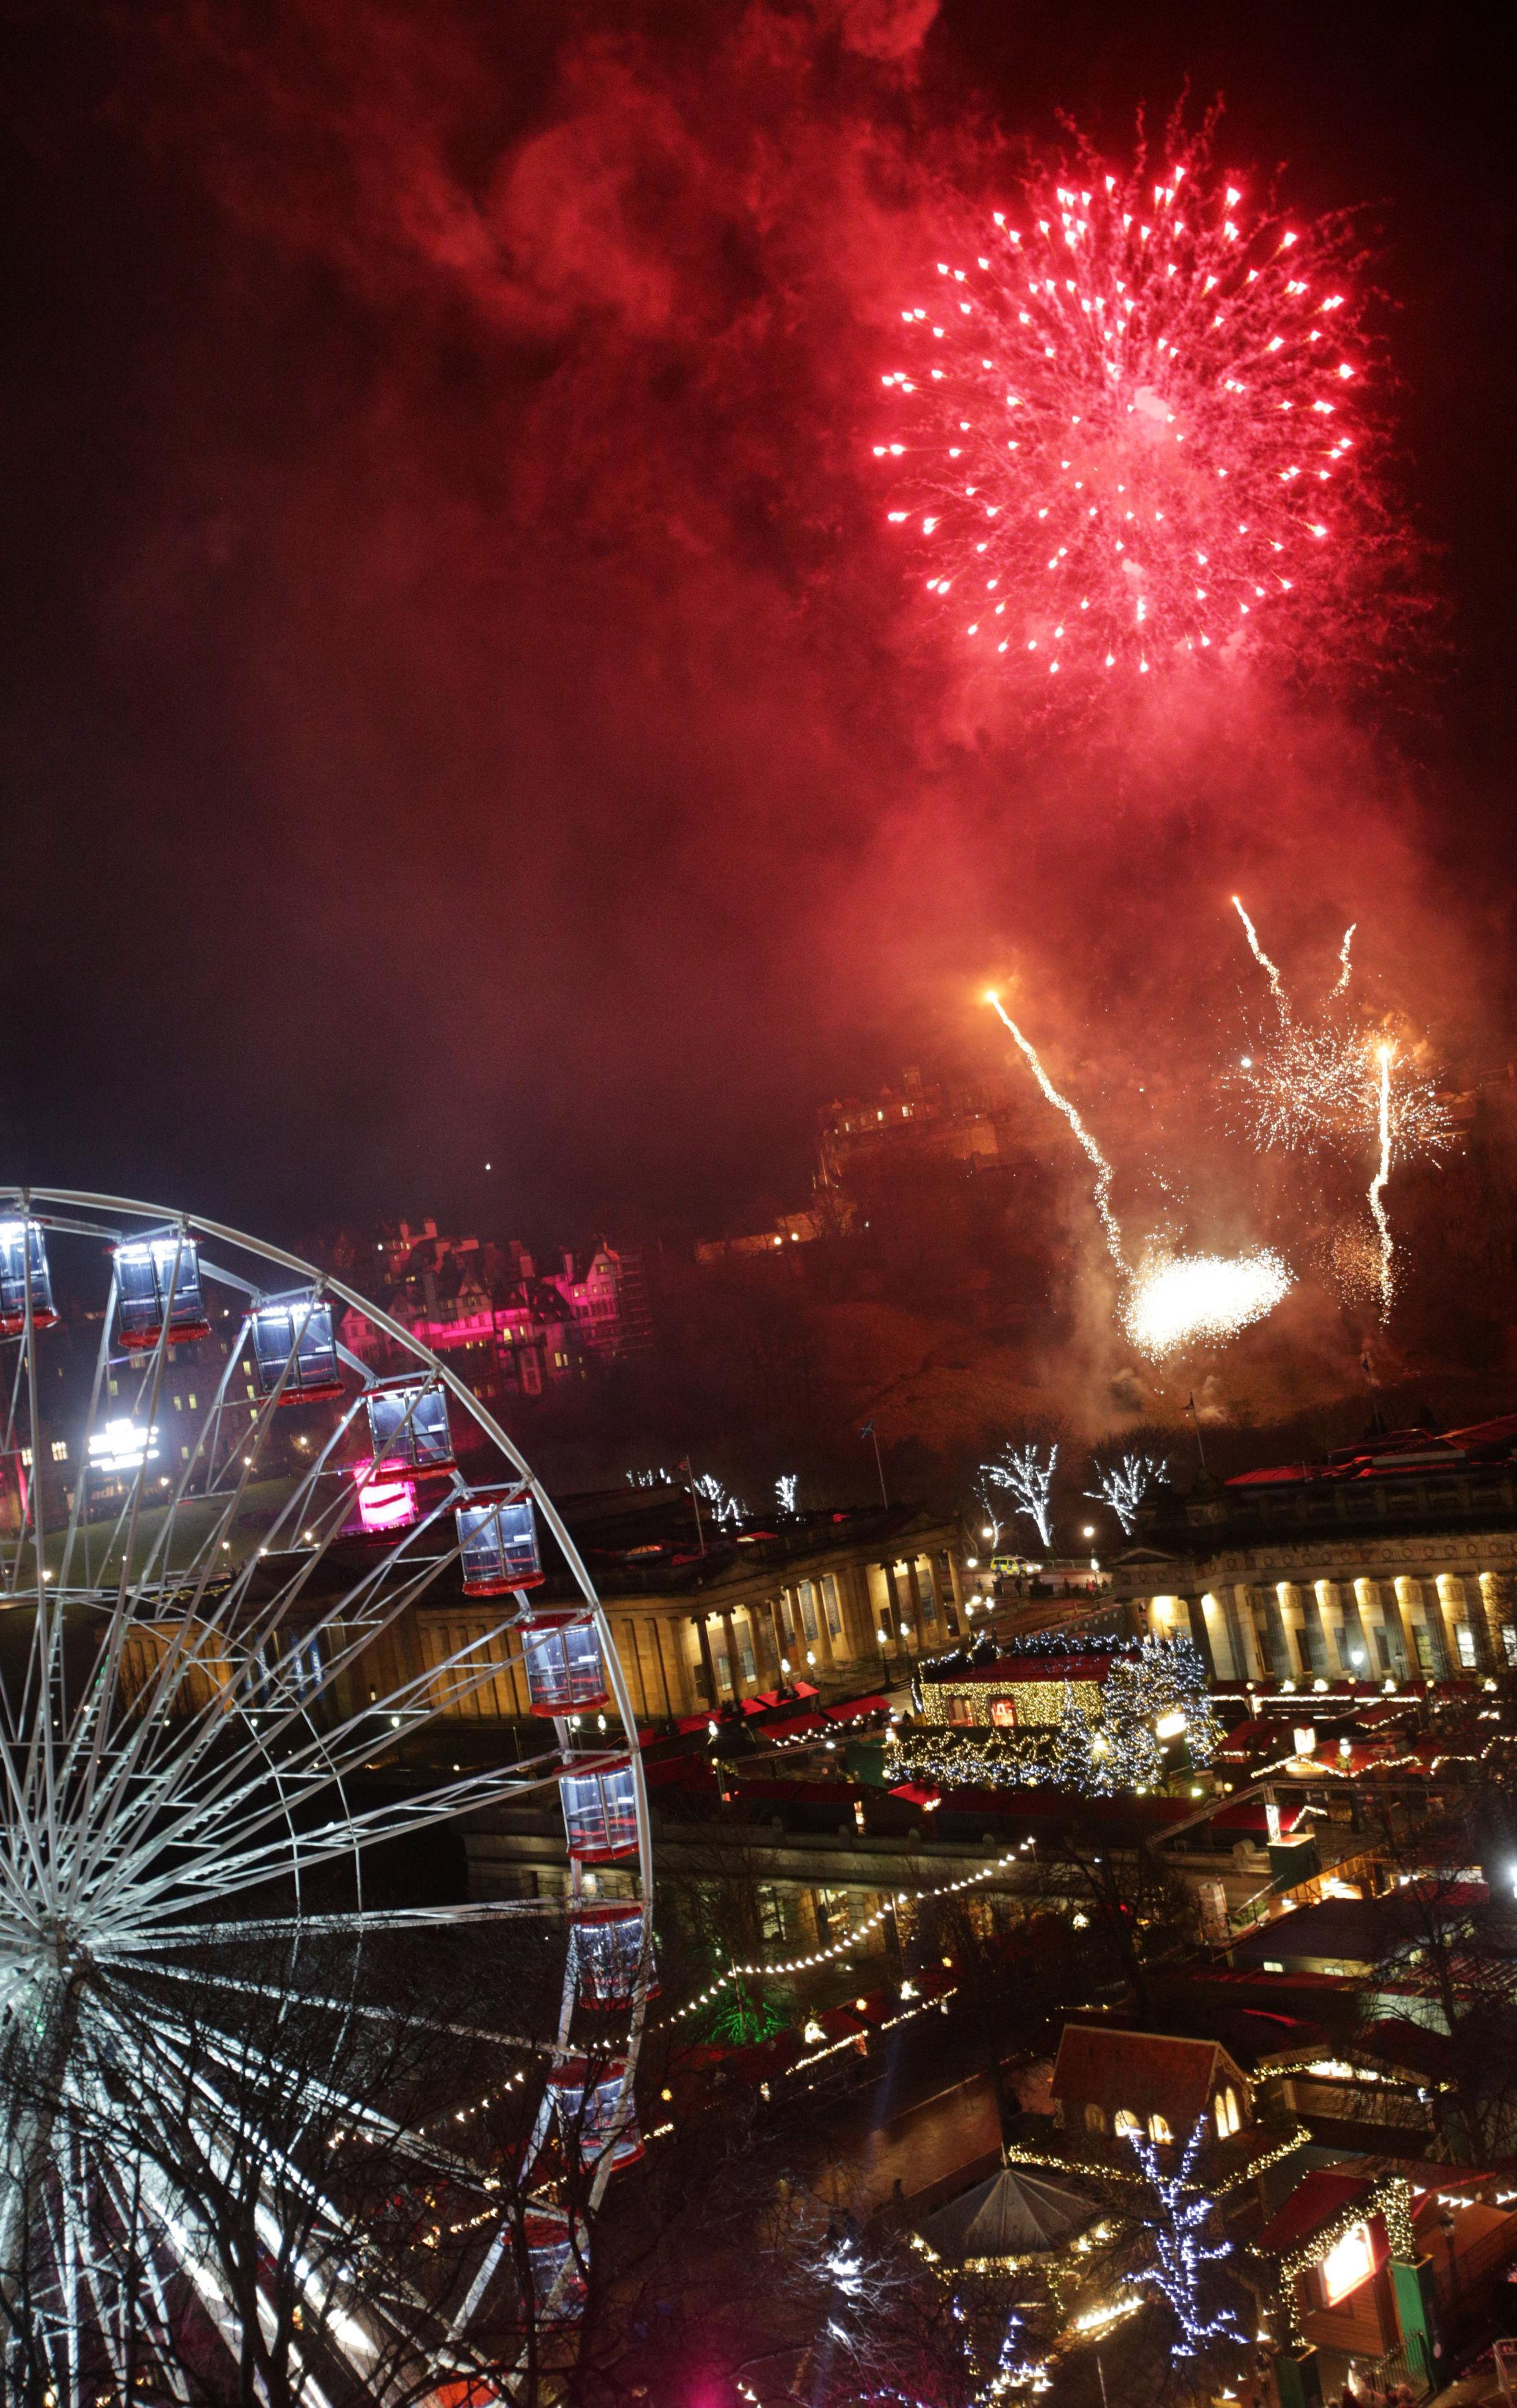 Scots bring in the bells watching dazzling fireworks at Edinburgh s     The amazing spectacle lit up the capital city